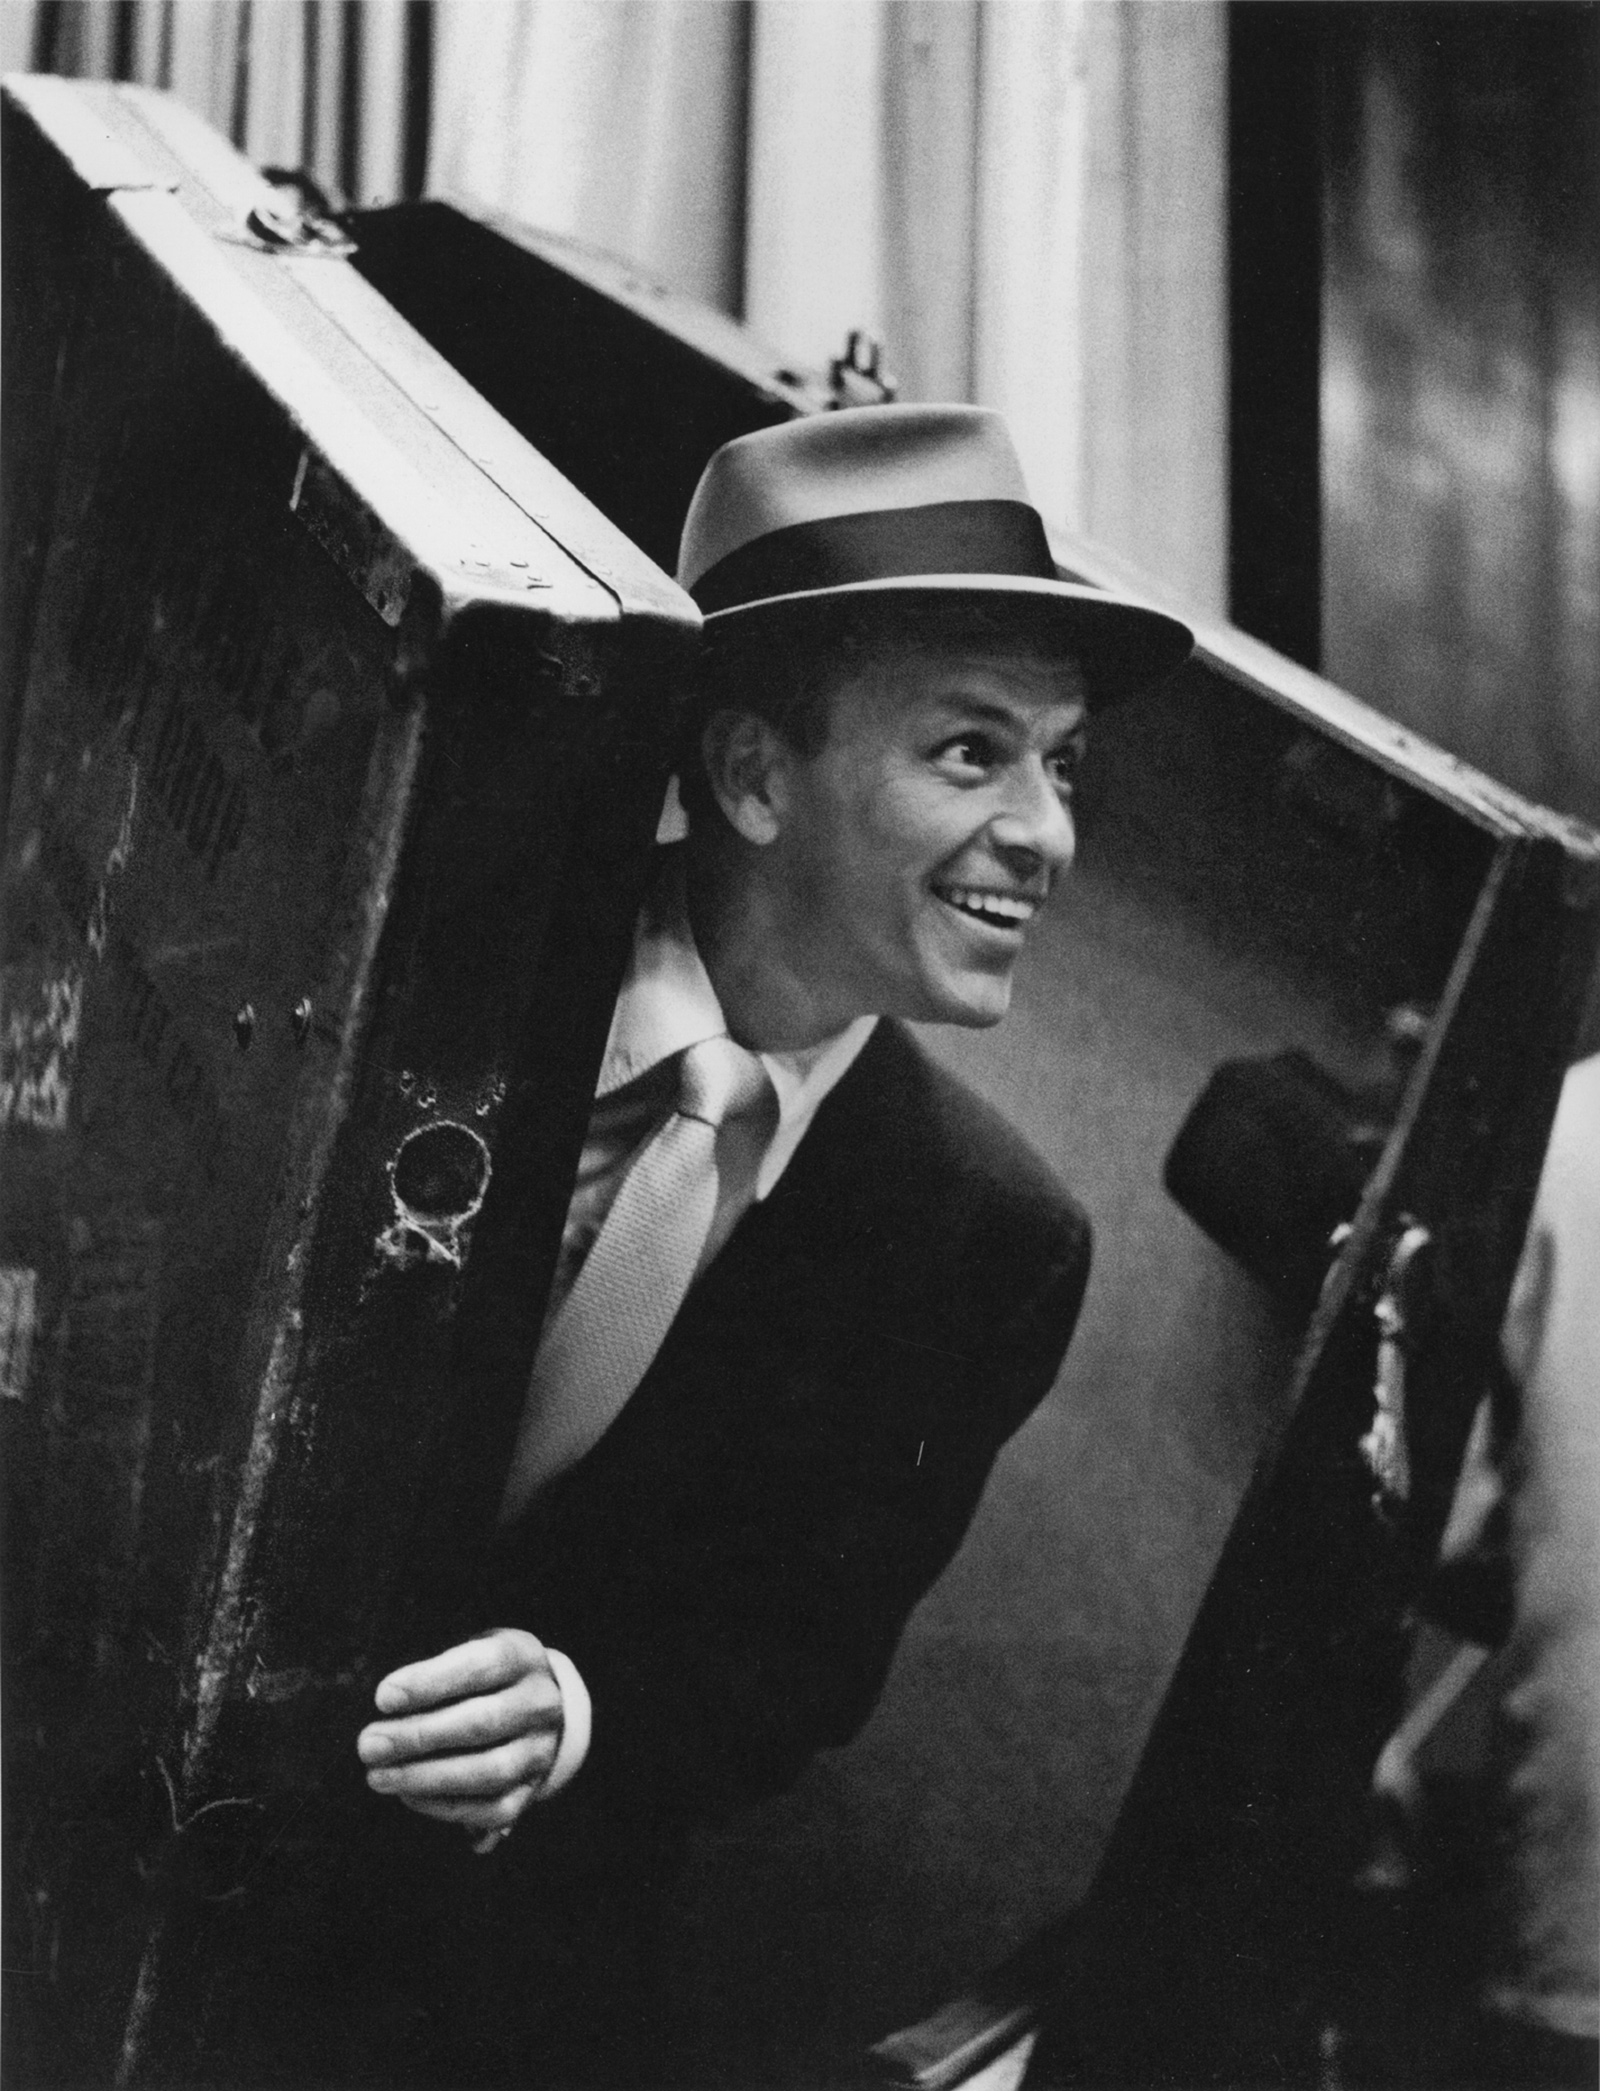 summary of frank sinatra essay His background, career, personality, etc if you have an interest in frank sinatra or even the culture of past decades, this essay's for you it is a very insightful.